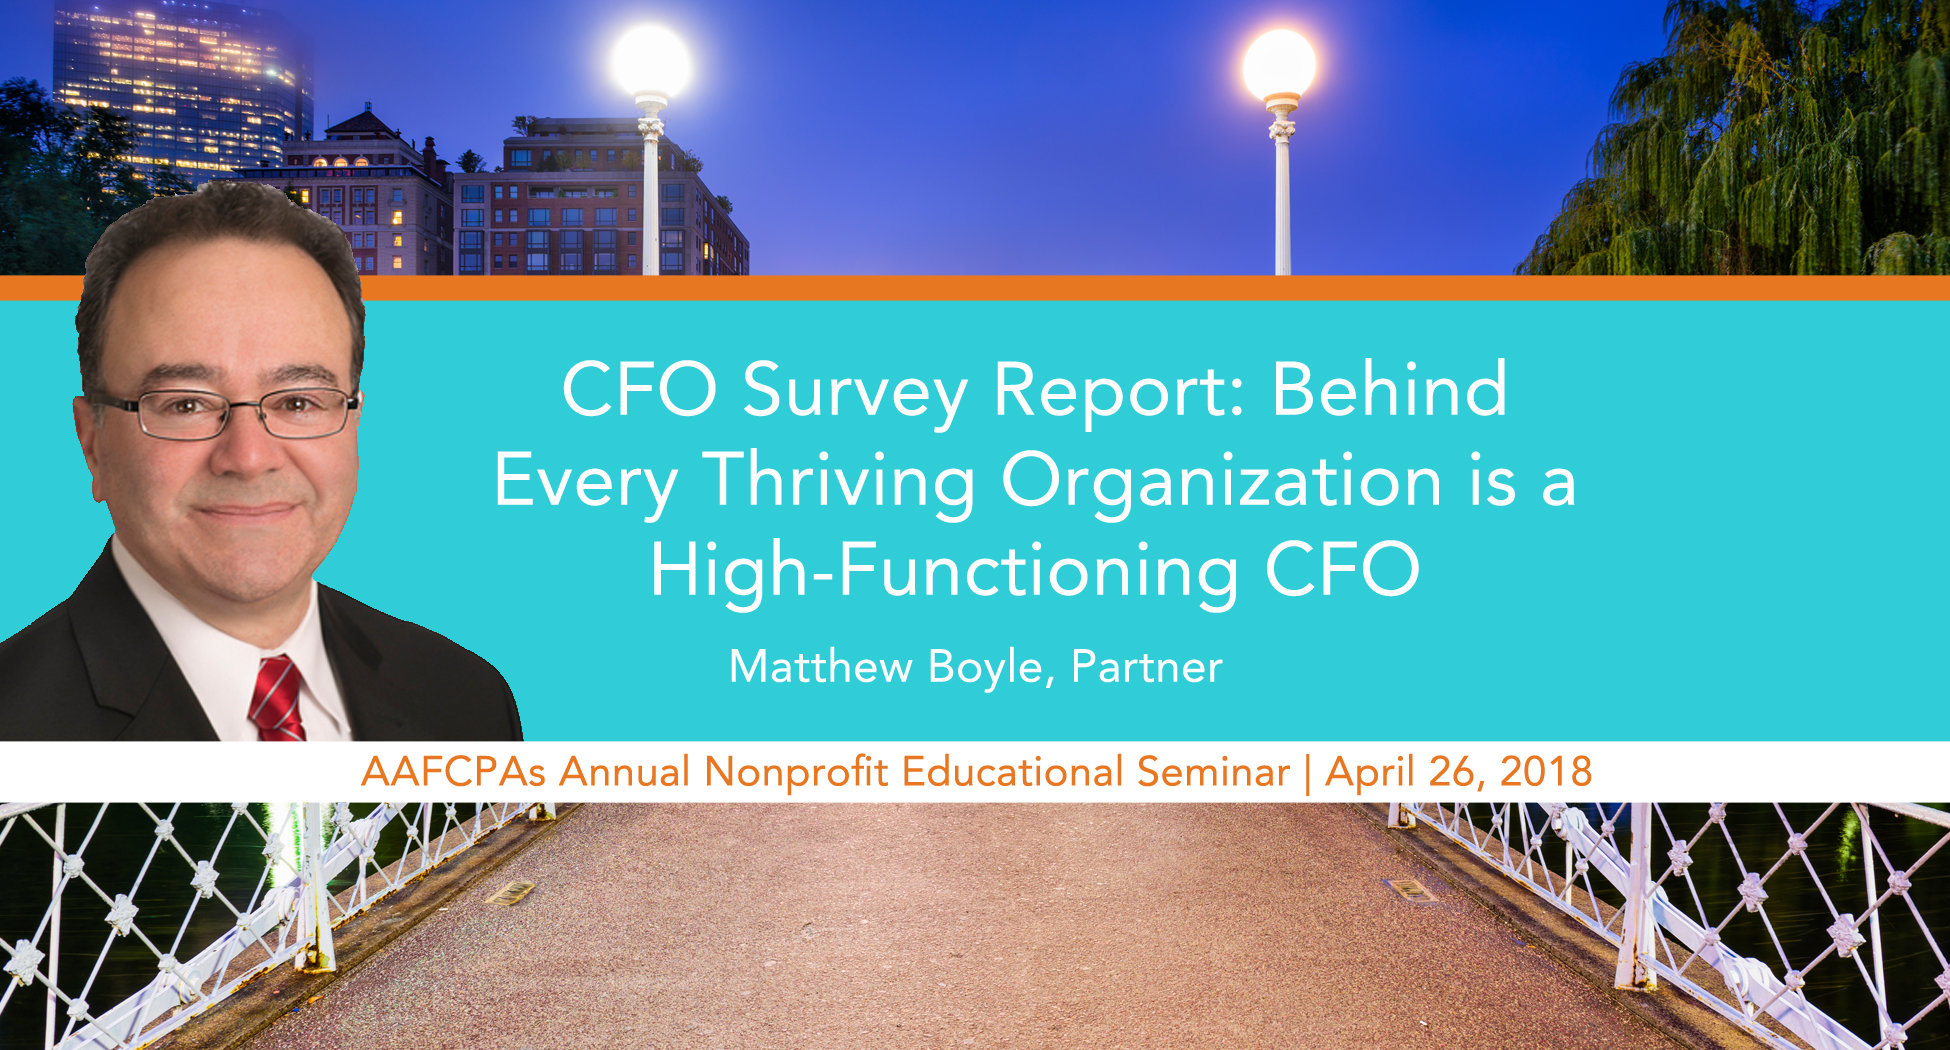 Educational Podcast: CFO Survey Report: Behind Every Thriving Organization is a High-Functioning CFO